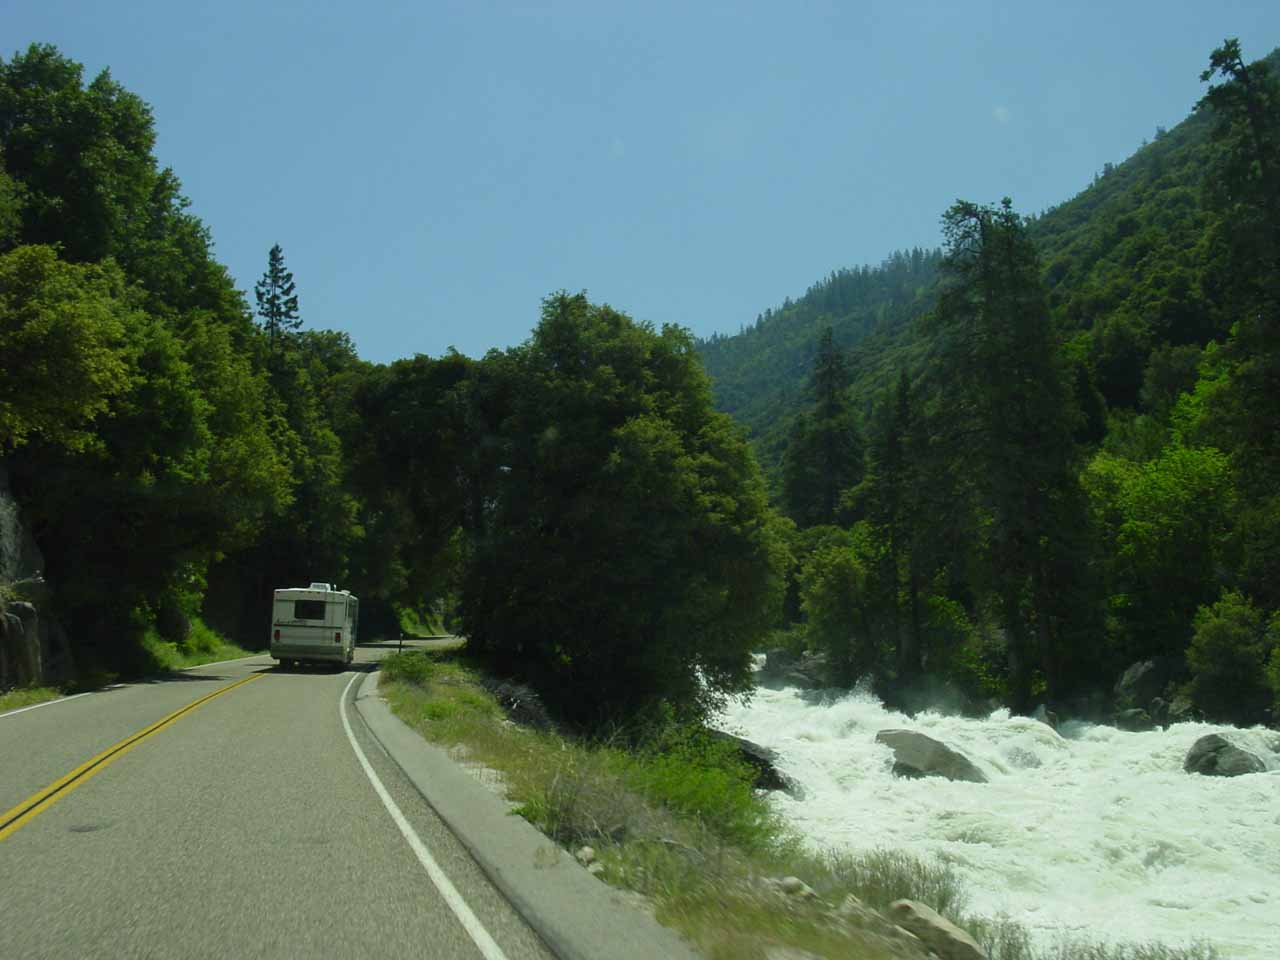 Driving the Kings Canyon Highway 180 towards Cedar Grove as the road follows a raging Kings River